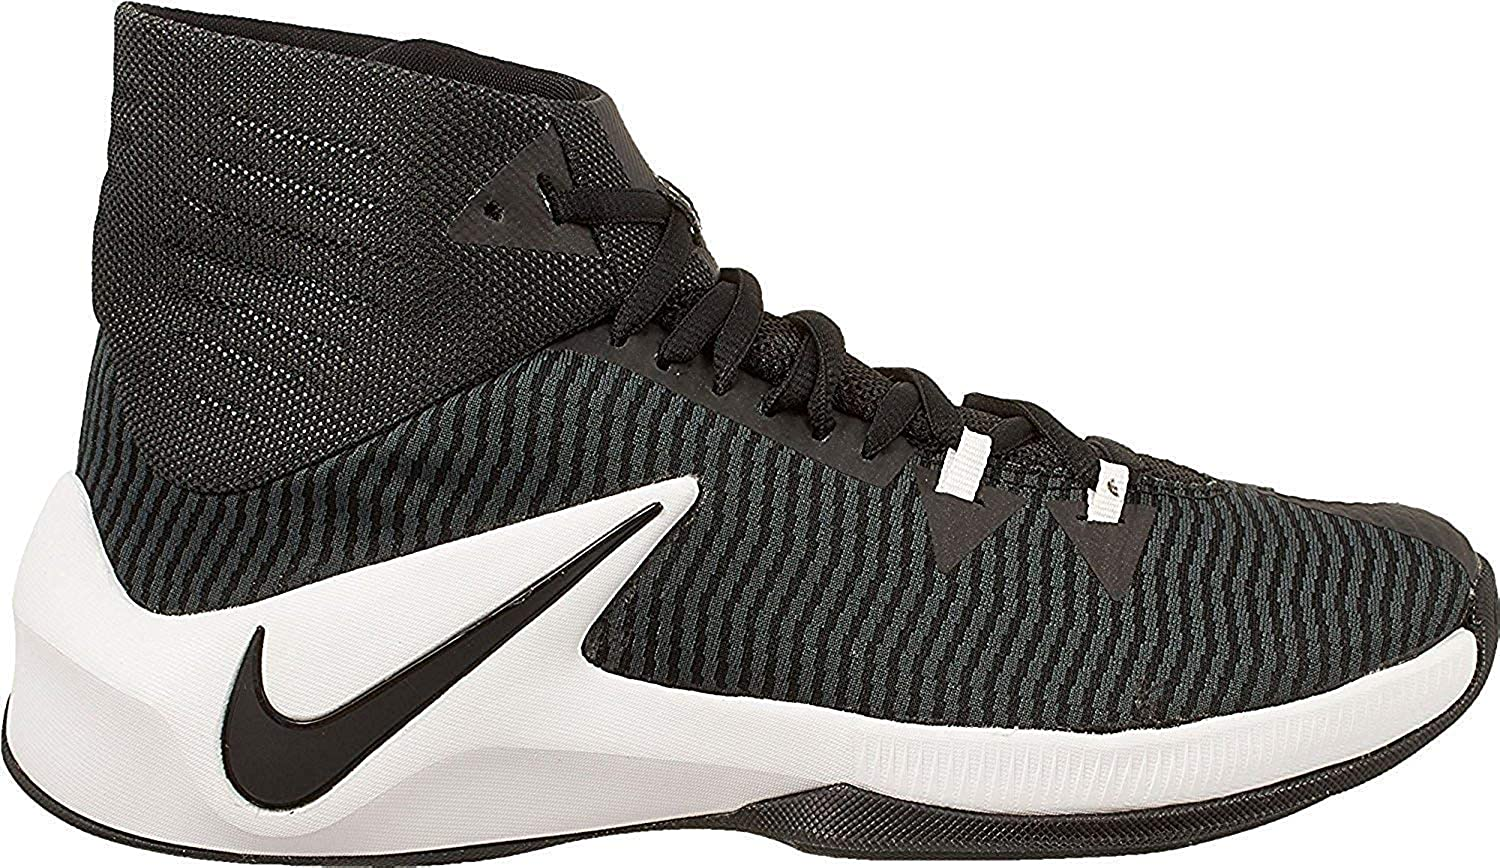 Nike Zoom Clearout Men's Basketball shoes